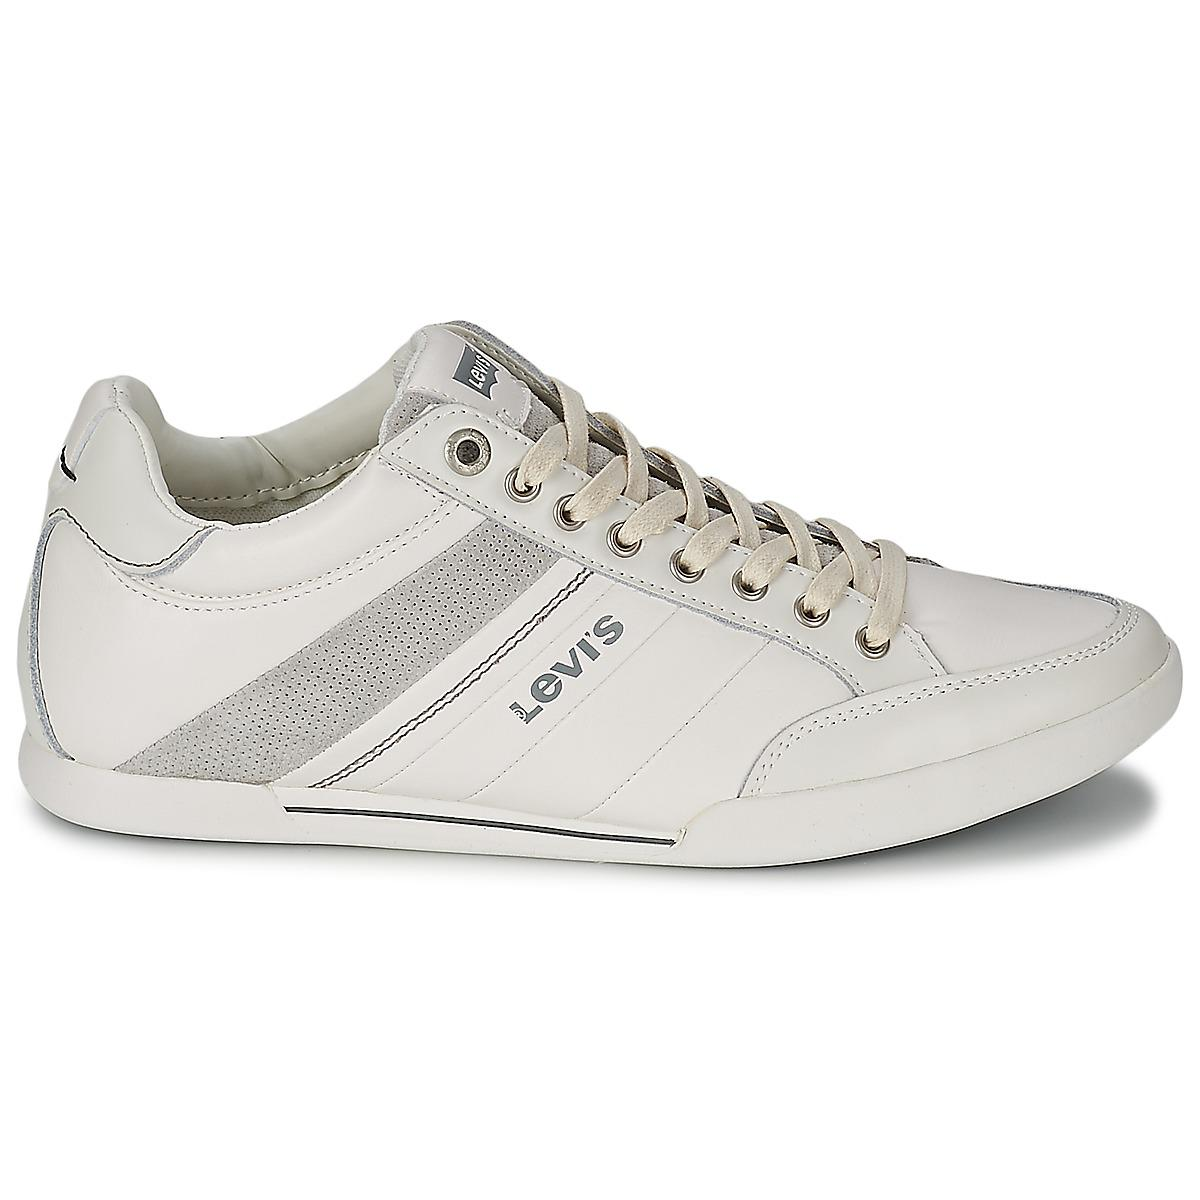 Levi's Leather Turlock Refresh Shoes (trainers) in White for Men